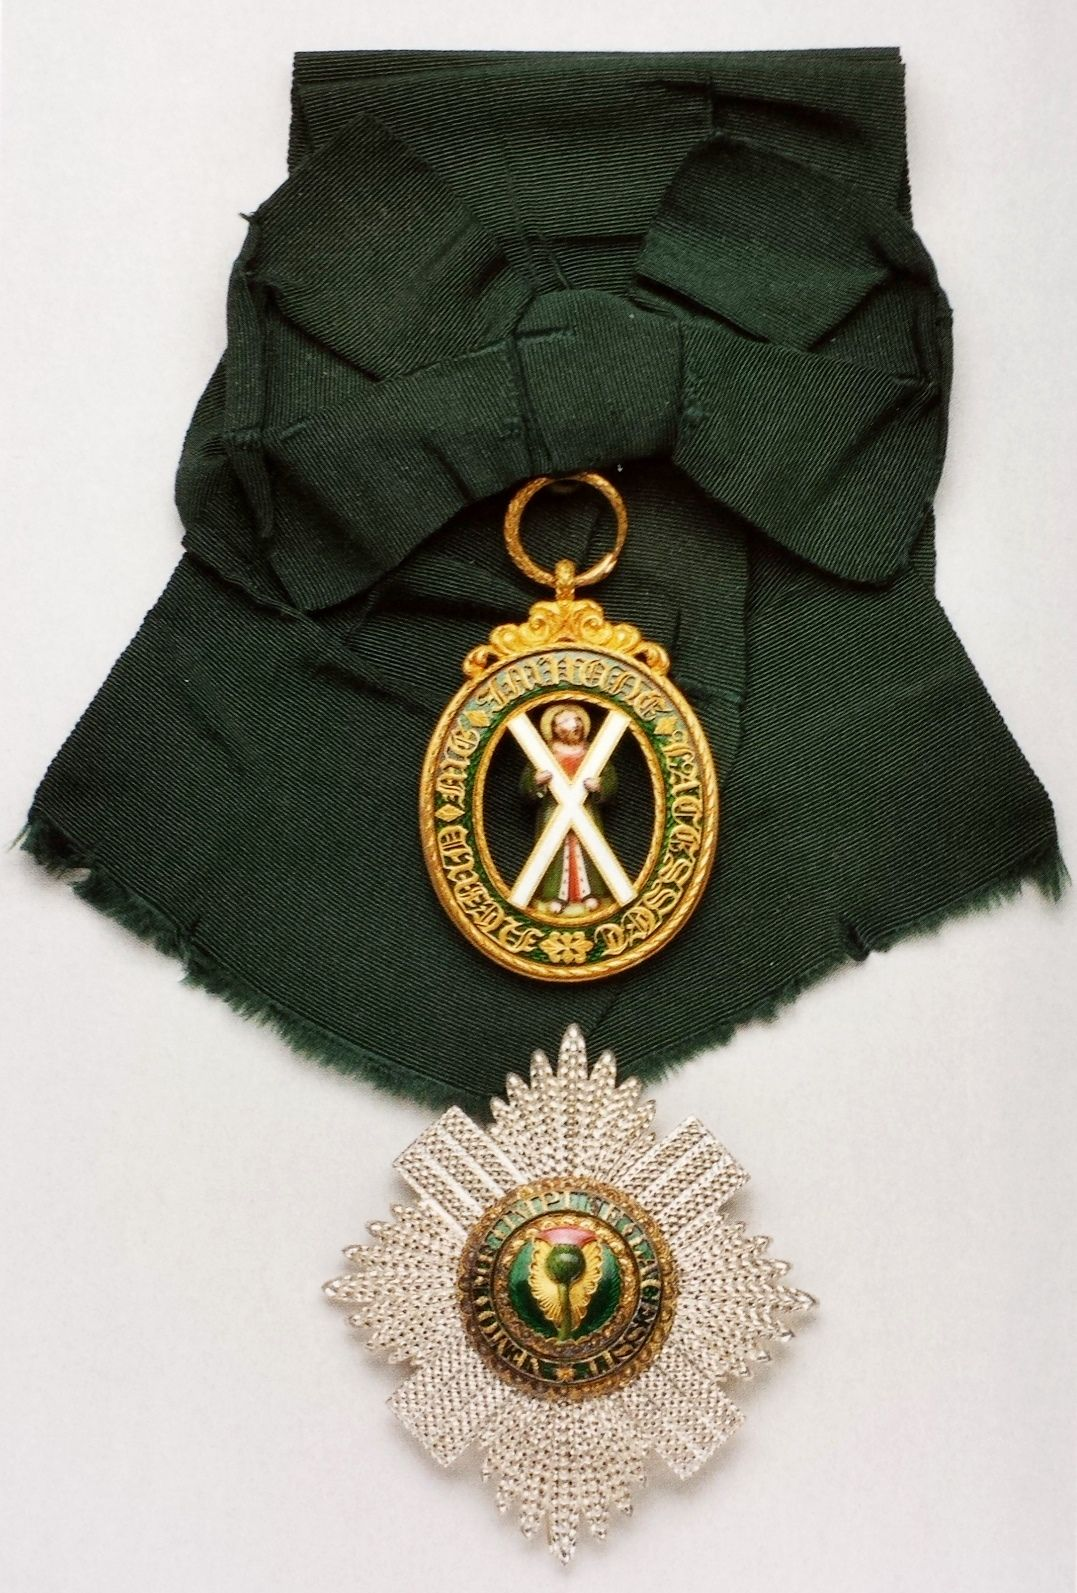 Order Of The Thistle Insignia; Sash Badge, Begin 19th